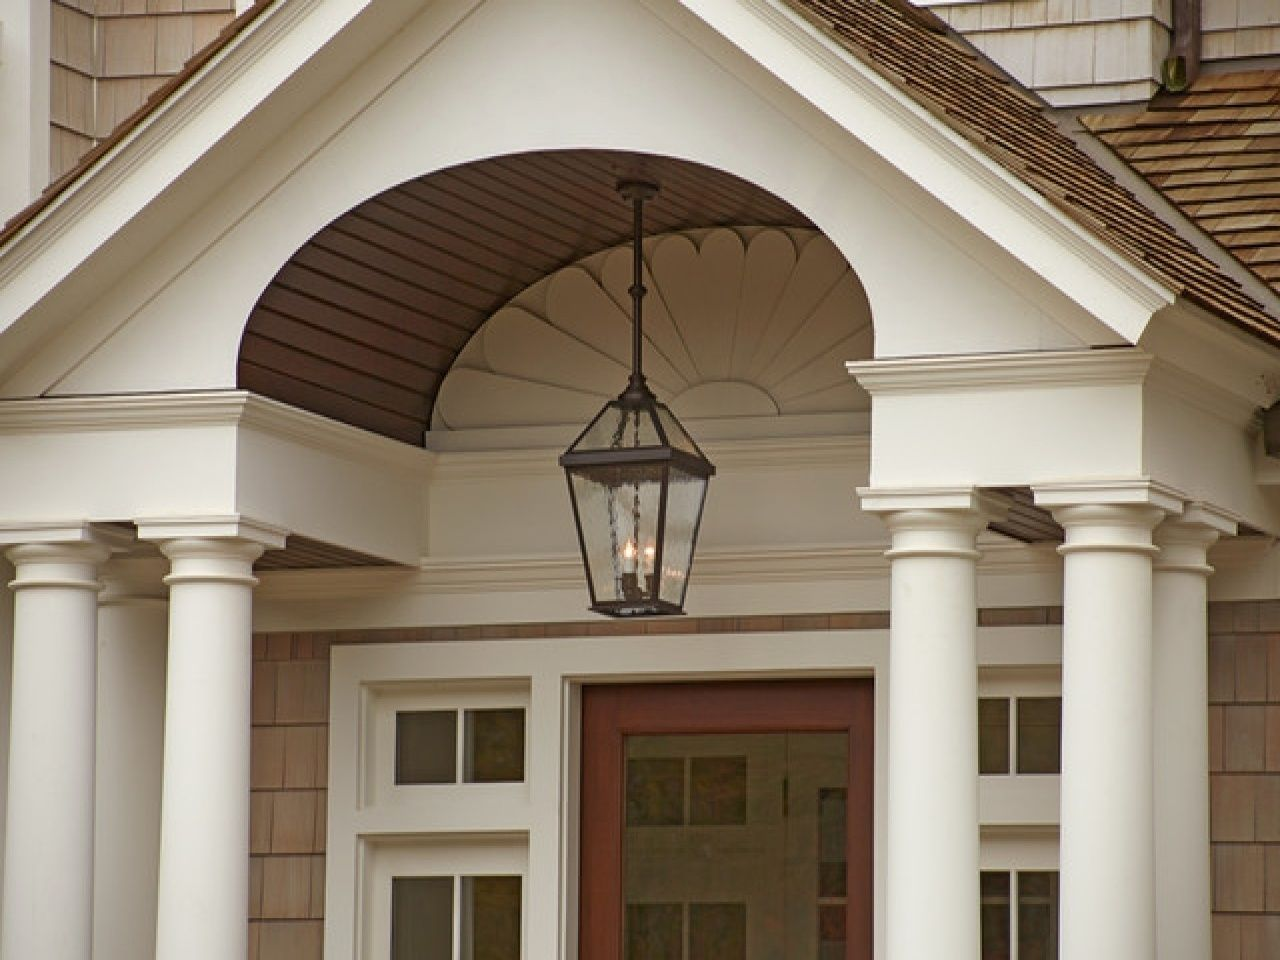 Best Of Outdoor Front Porch Hanging Light Rt183w Https Sanantoniohomeinspector Biz Best Of Ou Porch Light Fixtures Outdoor Hanging Lights Front Door Lighting